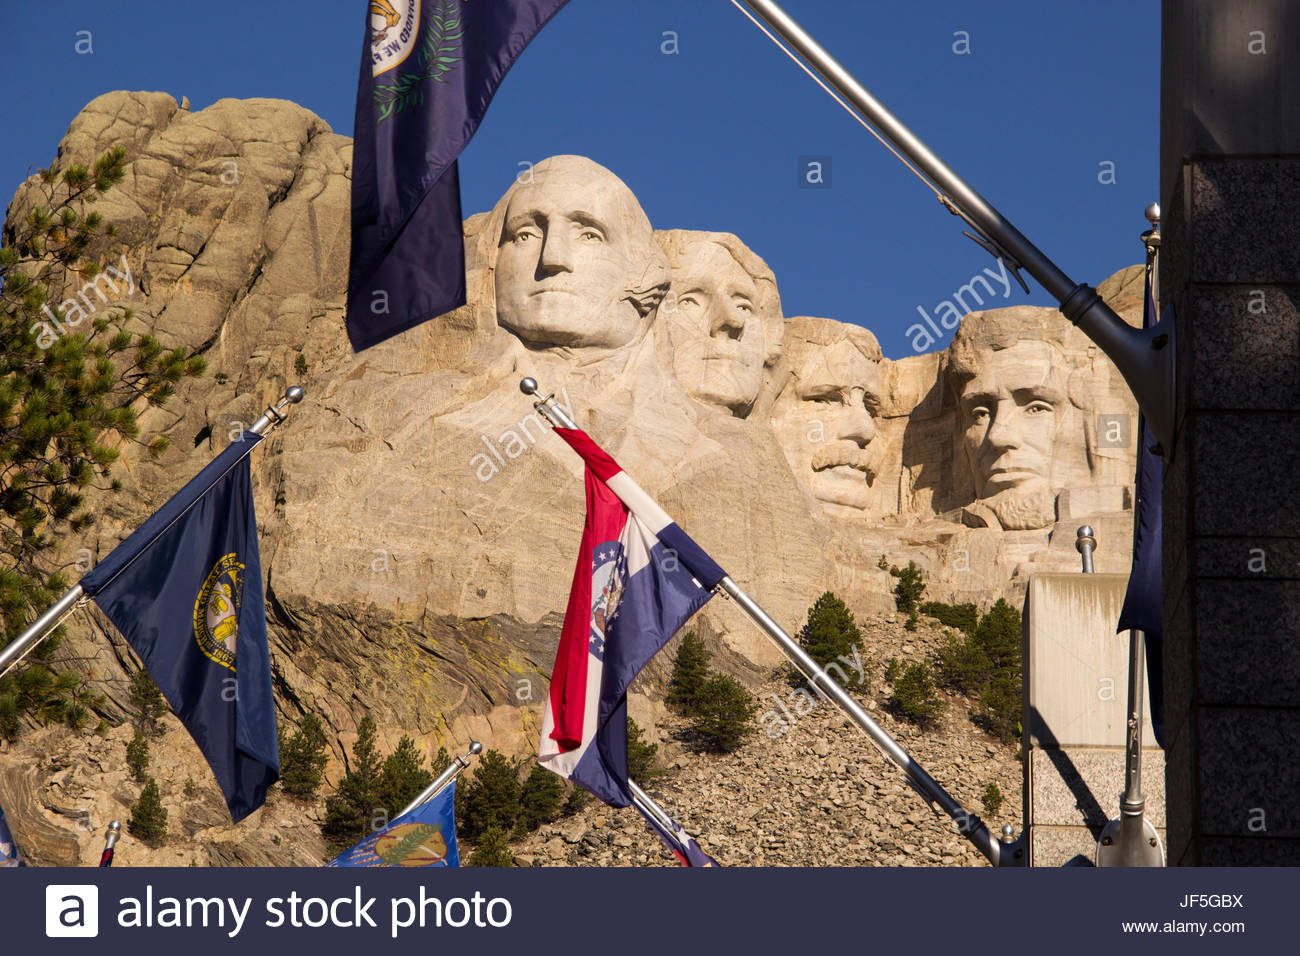 State flags frame the landmark sculpture of United States presidents. - Stock Image